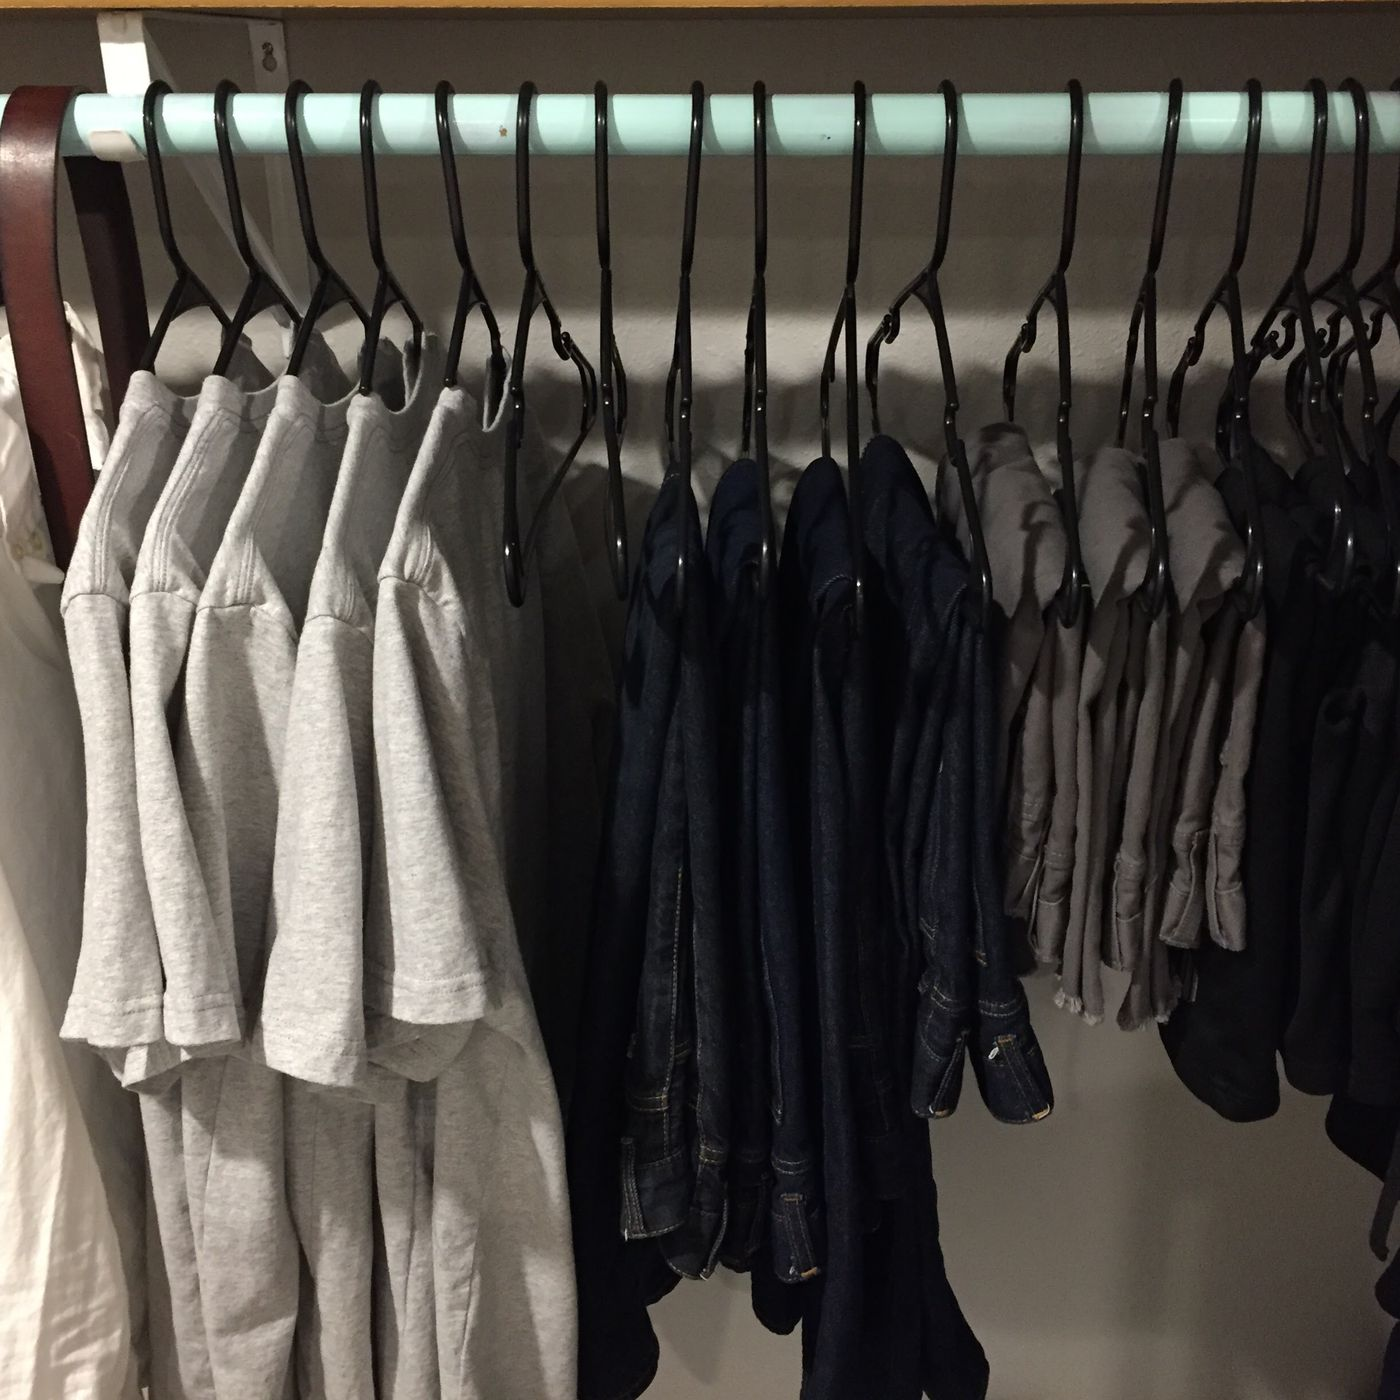 Uniform Dressing A Guy Who Wears The Same Thing Every Day Explains Vox